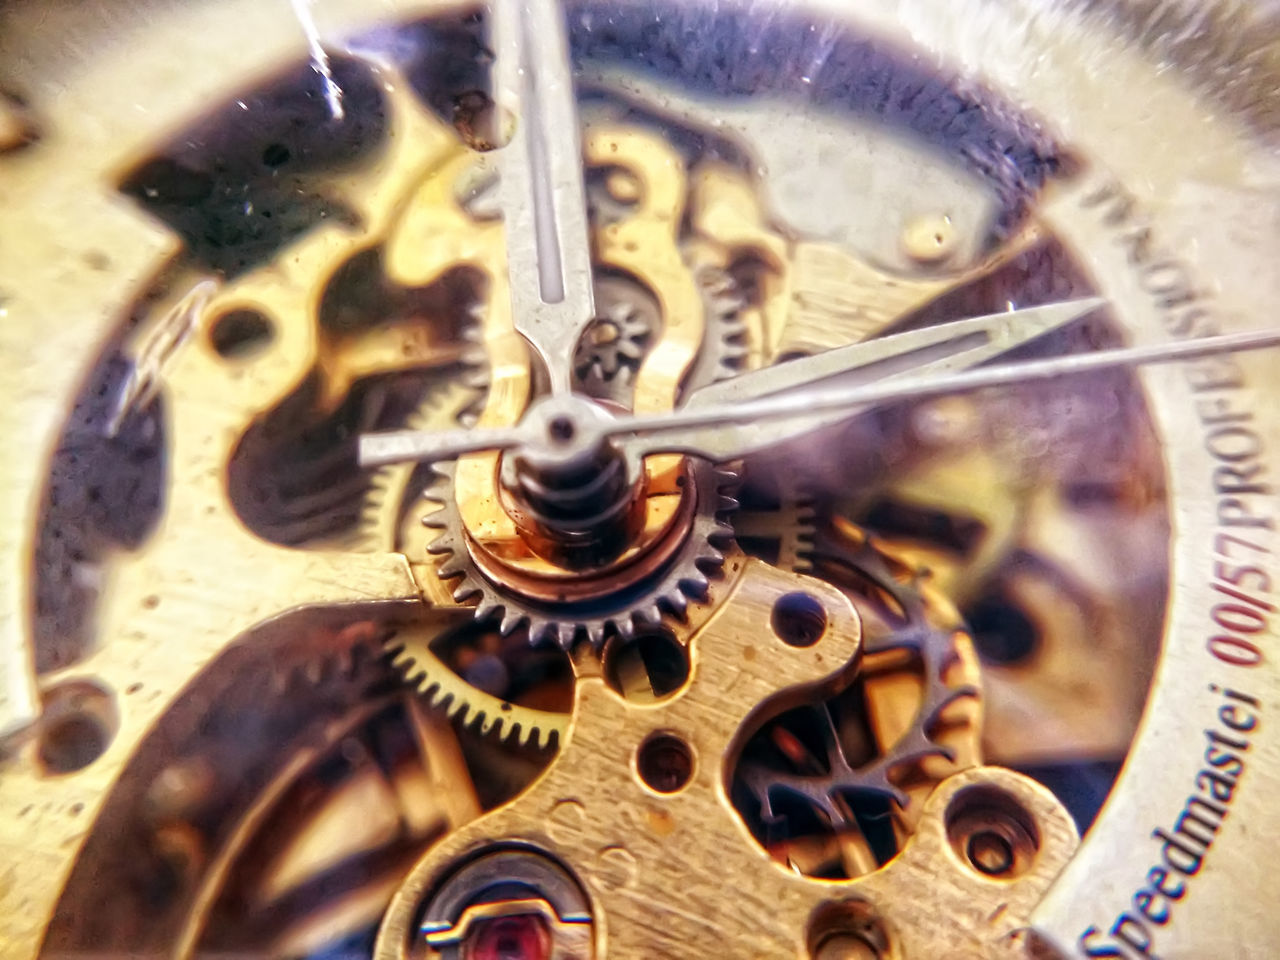 Accuracy Clock Clockworks Close-up Coiled Spring Dirty Gear Machine Part Machinery Metal Minute Hand No People Time